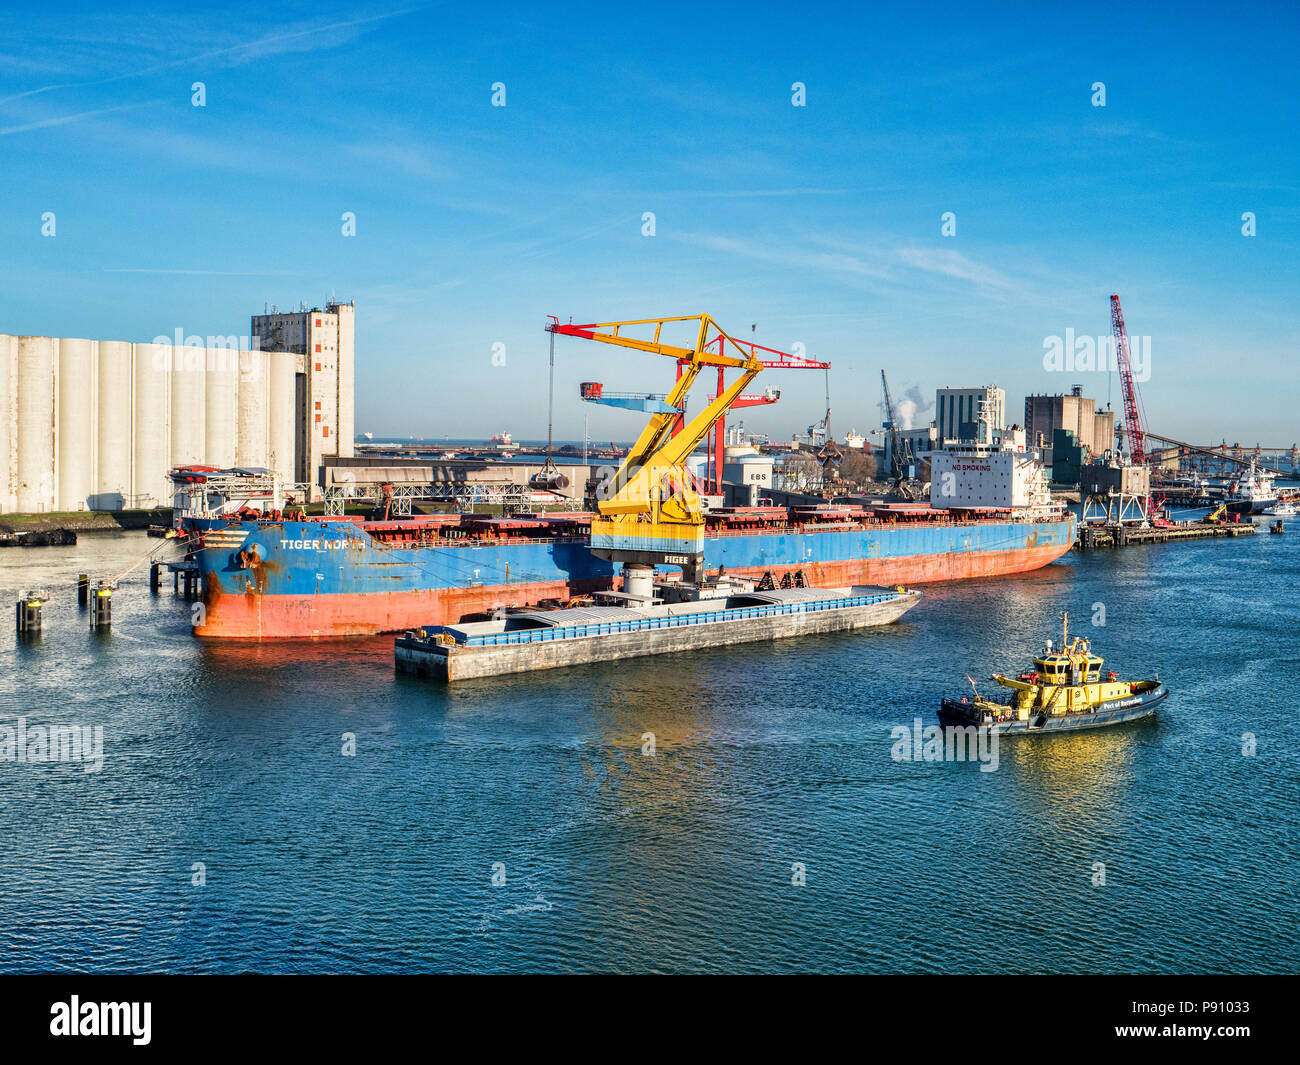 6 April 2018: Rotterdam, Netherlands - Bulk carrier Tiger North  being unloaded at Port of Rotterdam on a bright spring morning with clear blue sky. - Stock Image